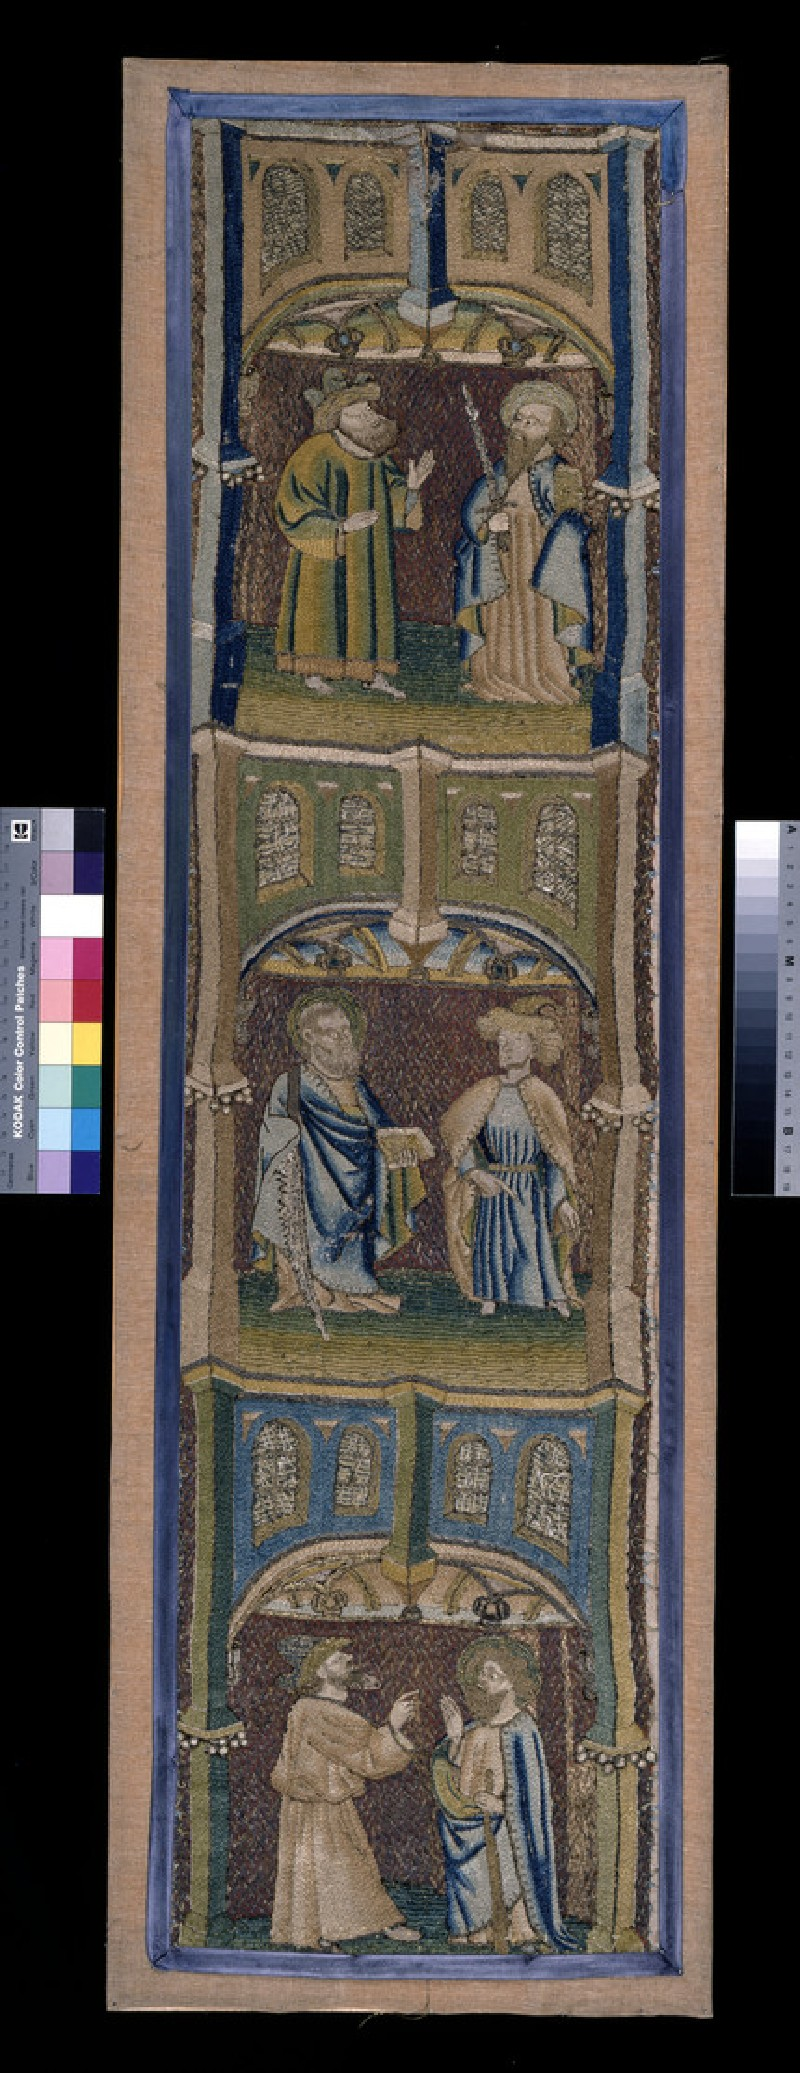 Ecclesiastical vestment embroidery, Opus Anglicanum